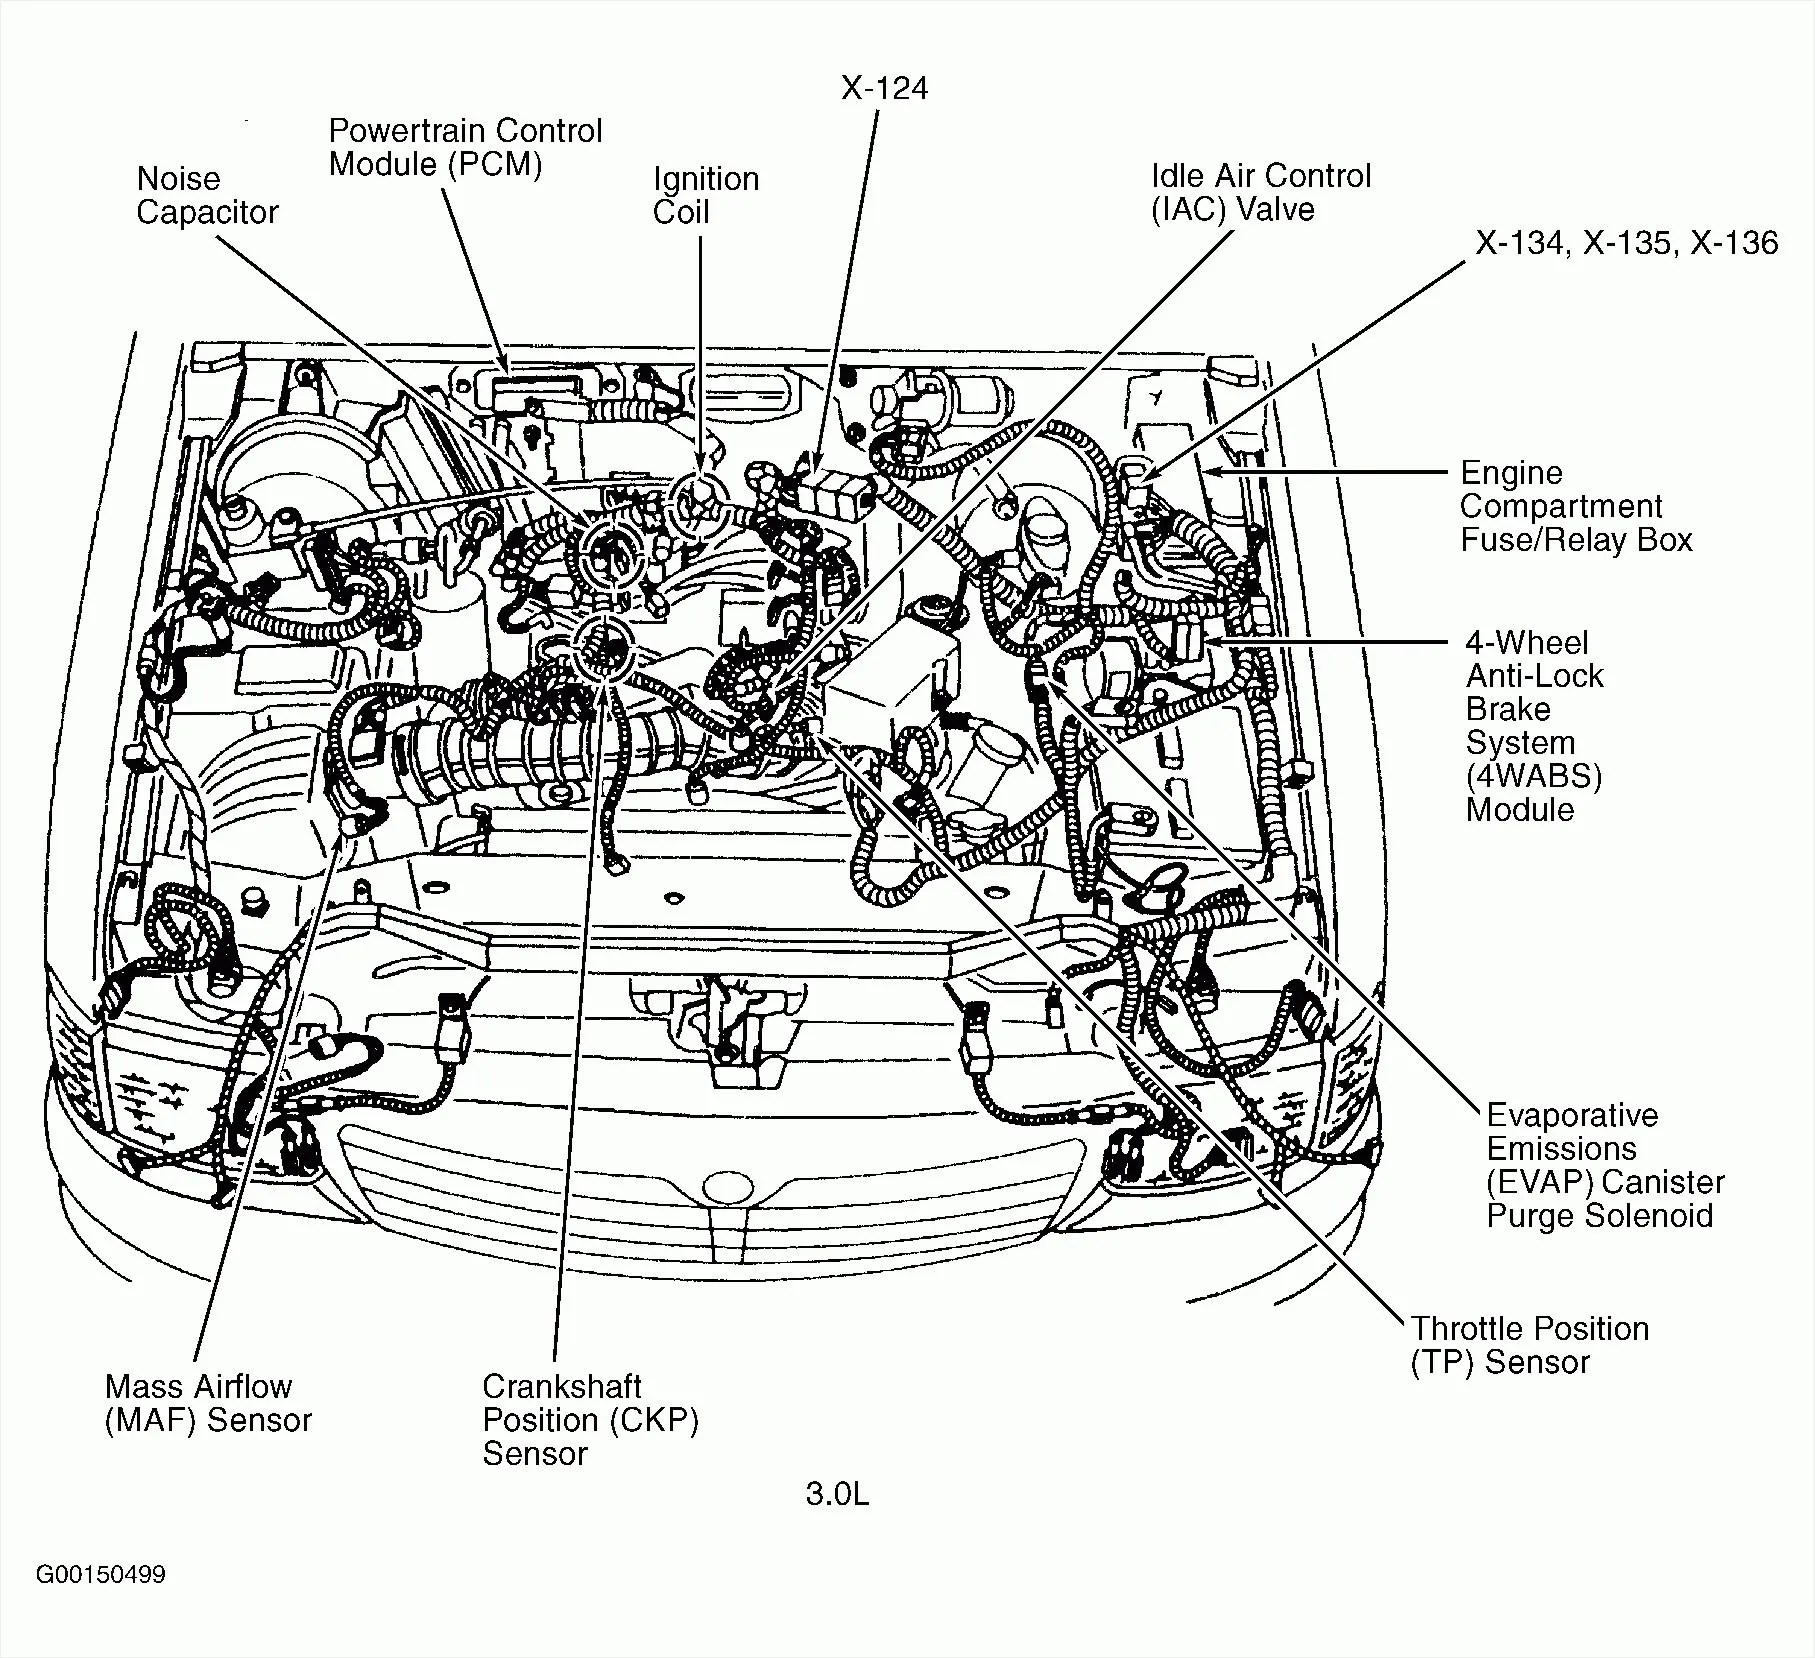 hight resolution of kf dohc v6 engine diagram trusted wiring diagrams u2022 rh radkan co 2002 saturn vue 3 0